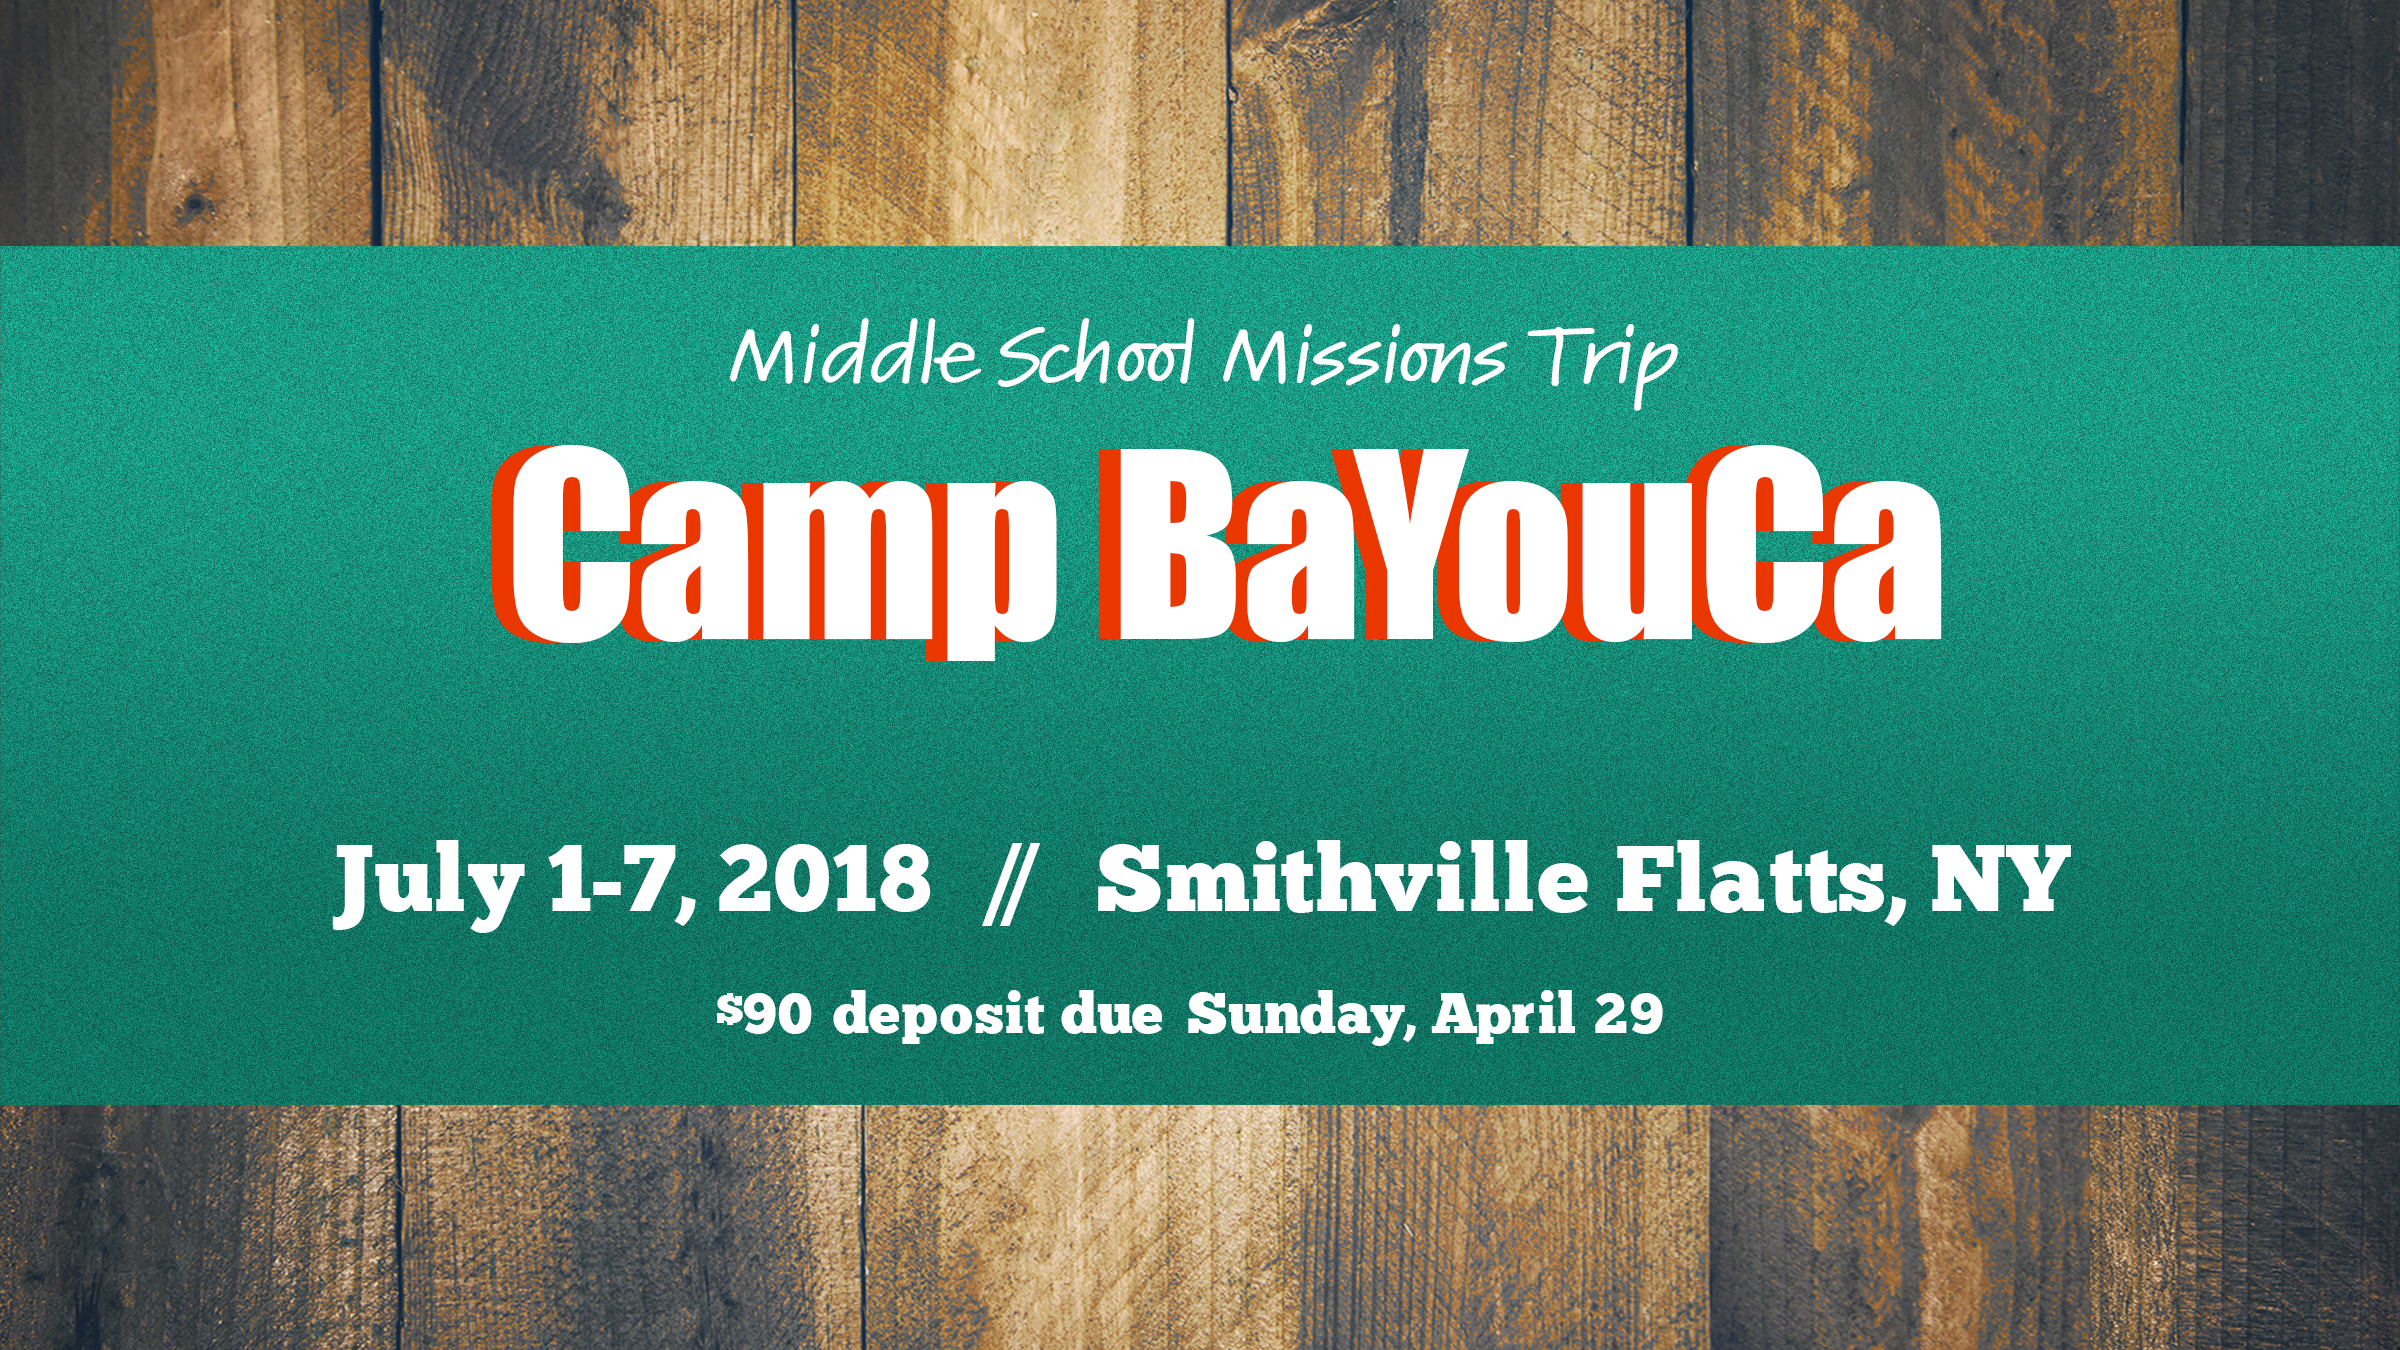 Middle School Missions Trip